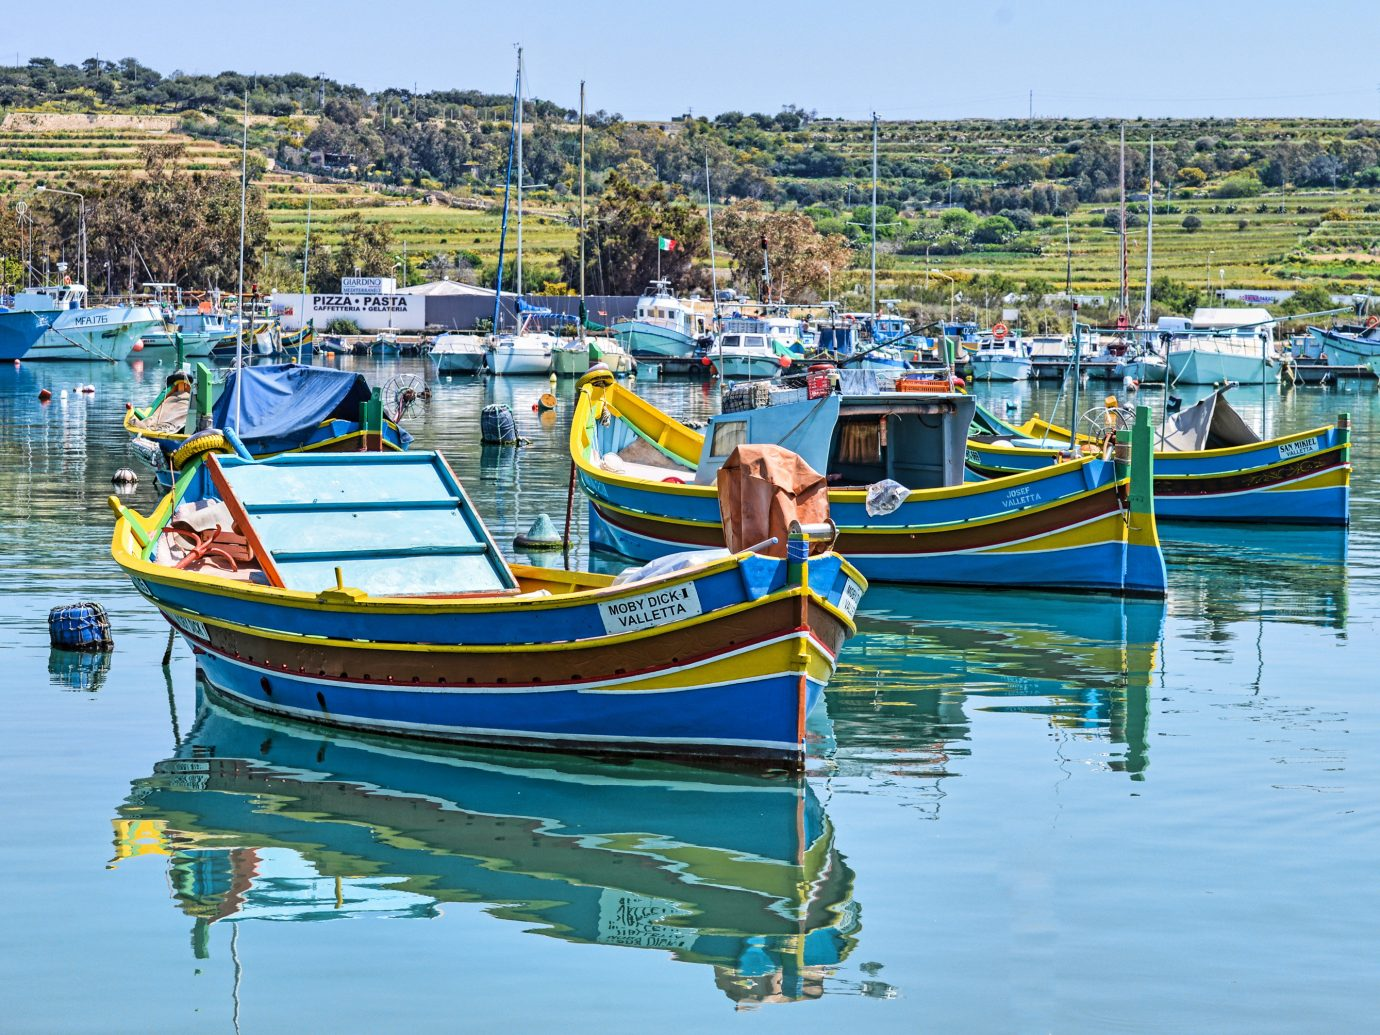 Trip Ideas water Boat sky outdoor scene Harbor vehicle long tail boat Sea boating watercraft rowing vacation fishing vessel watercraft yellow bay colorful colored tied